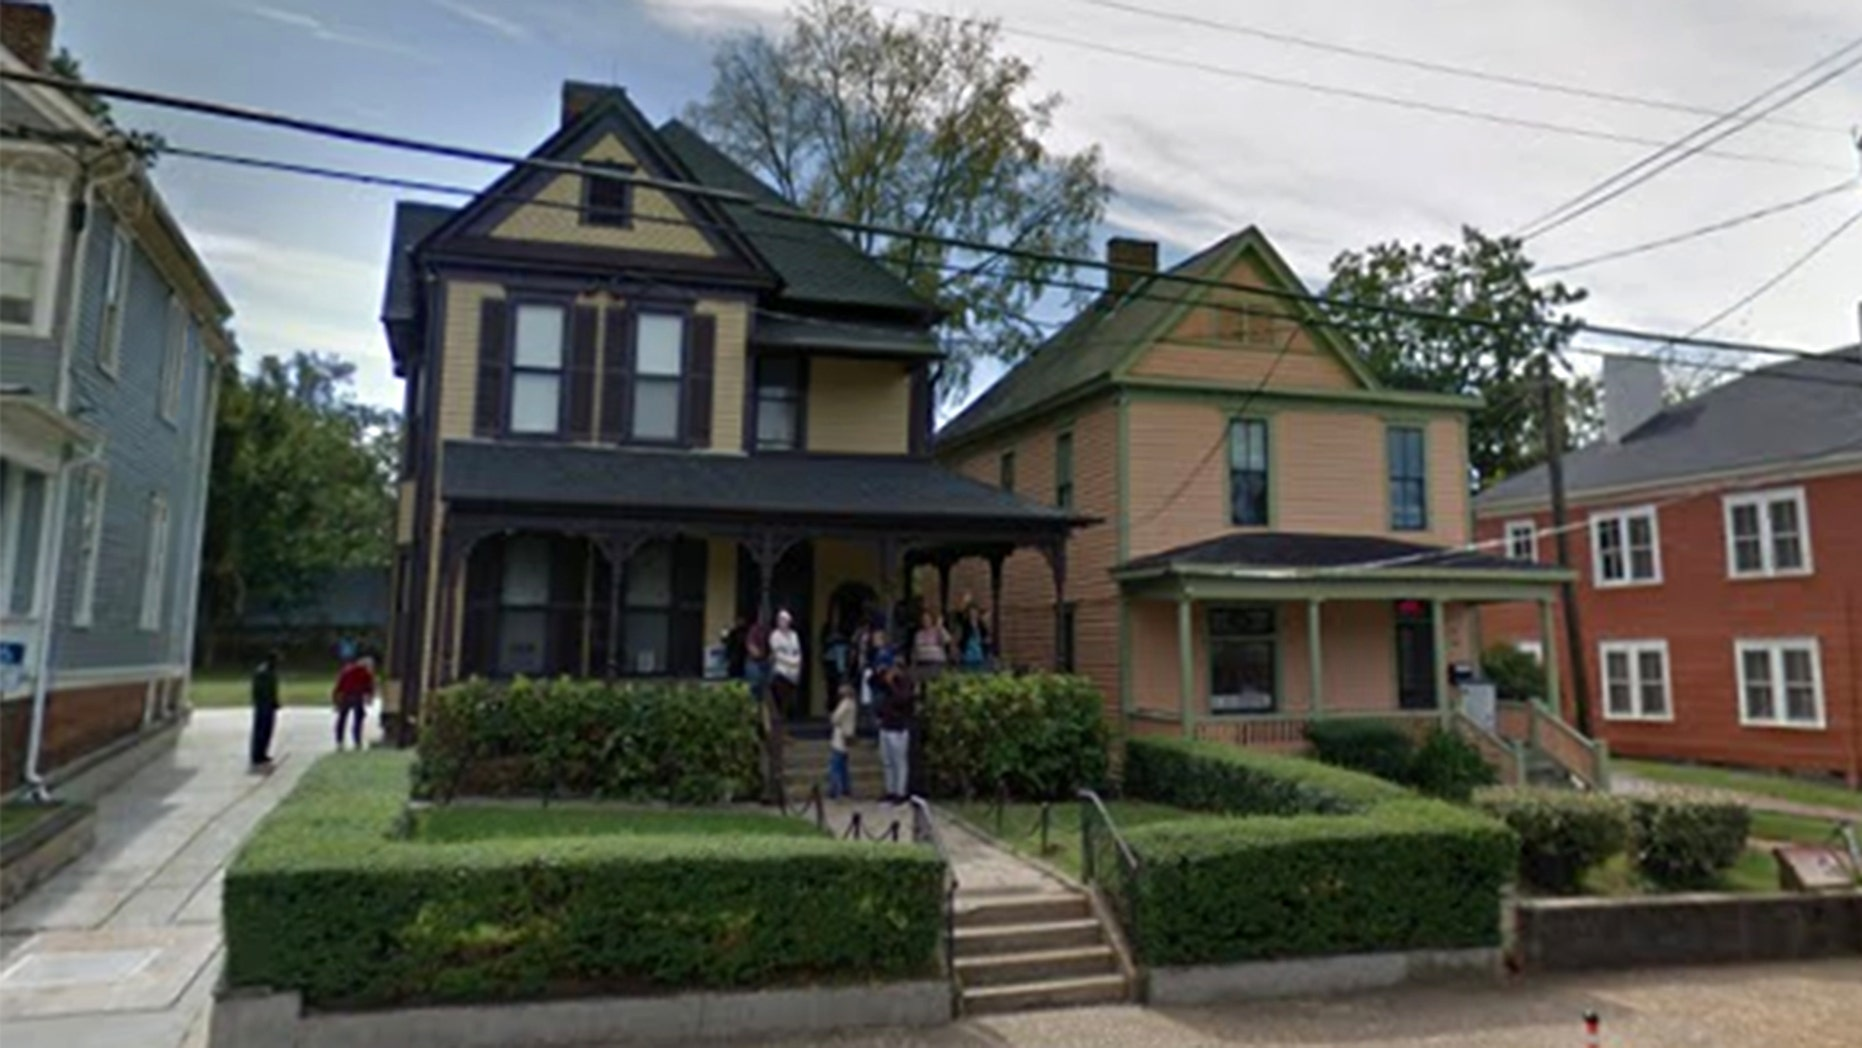 Martin Luther King Jr.'s birth home in Atlanta, Georgia, pictured here, and his longtime church will be closed on MLK Day should the government shutdown continue